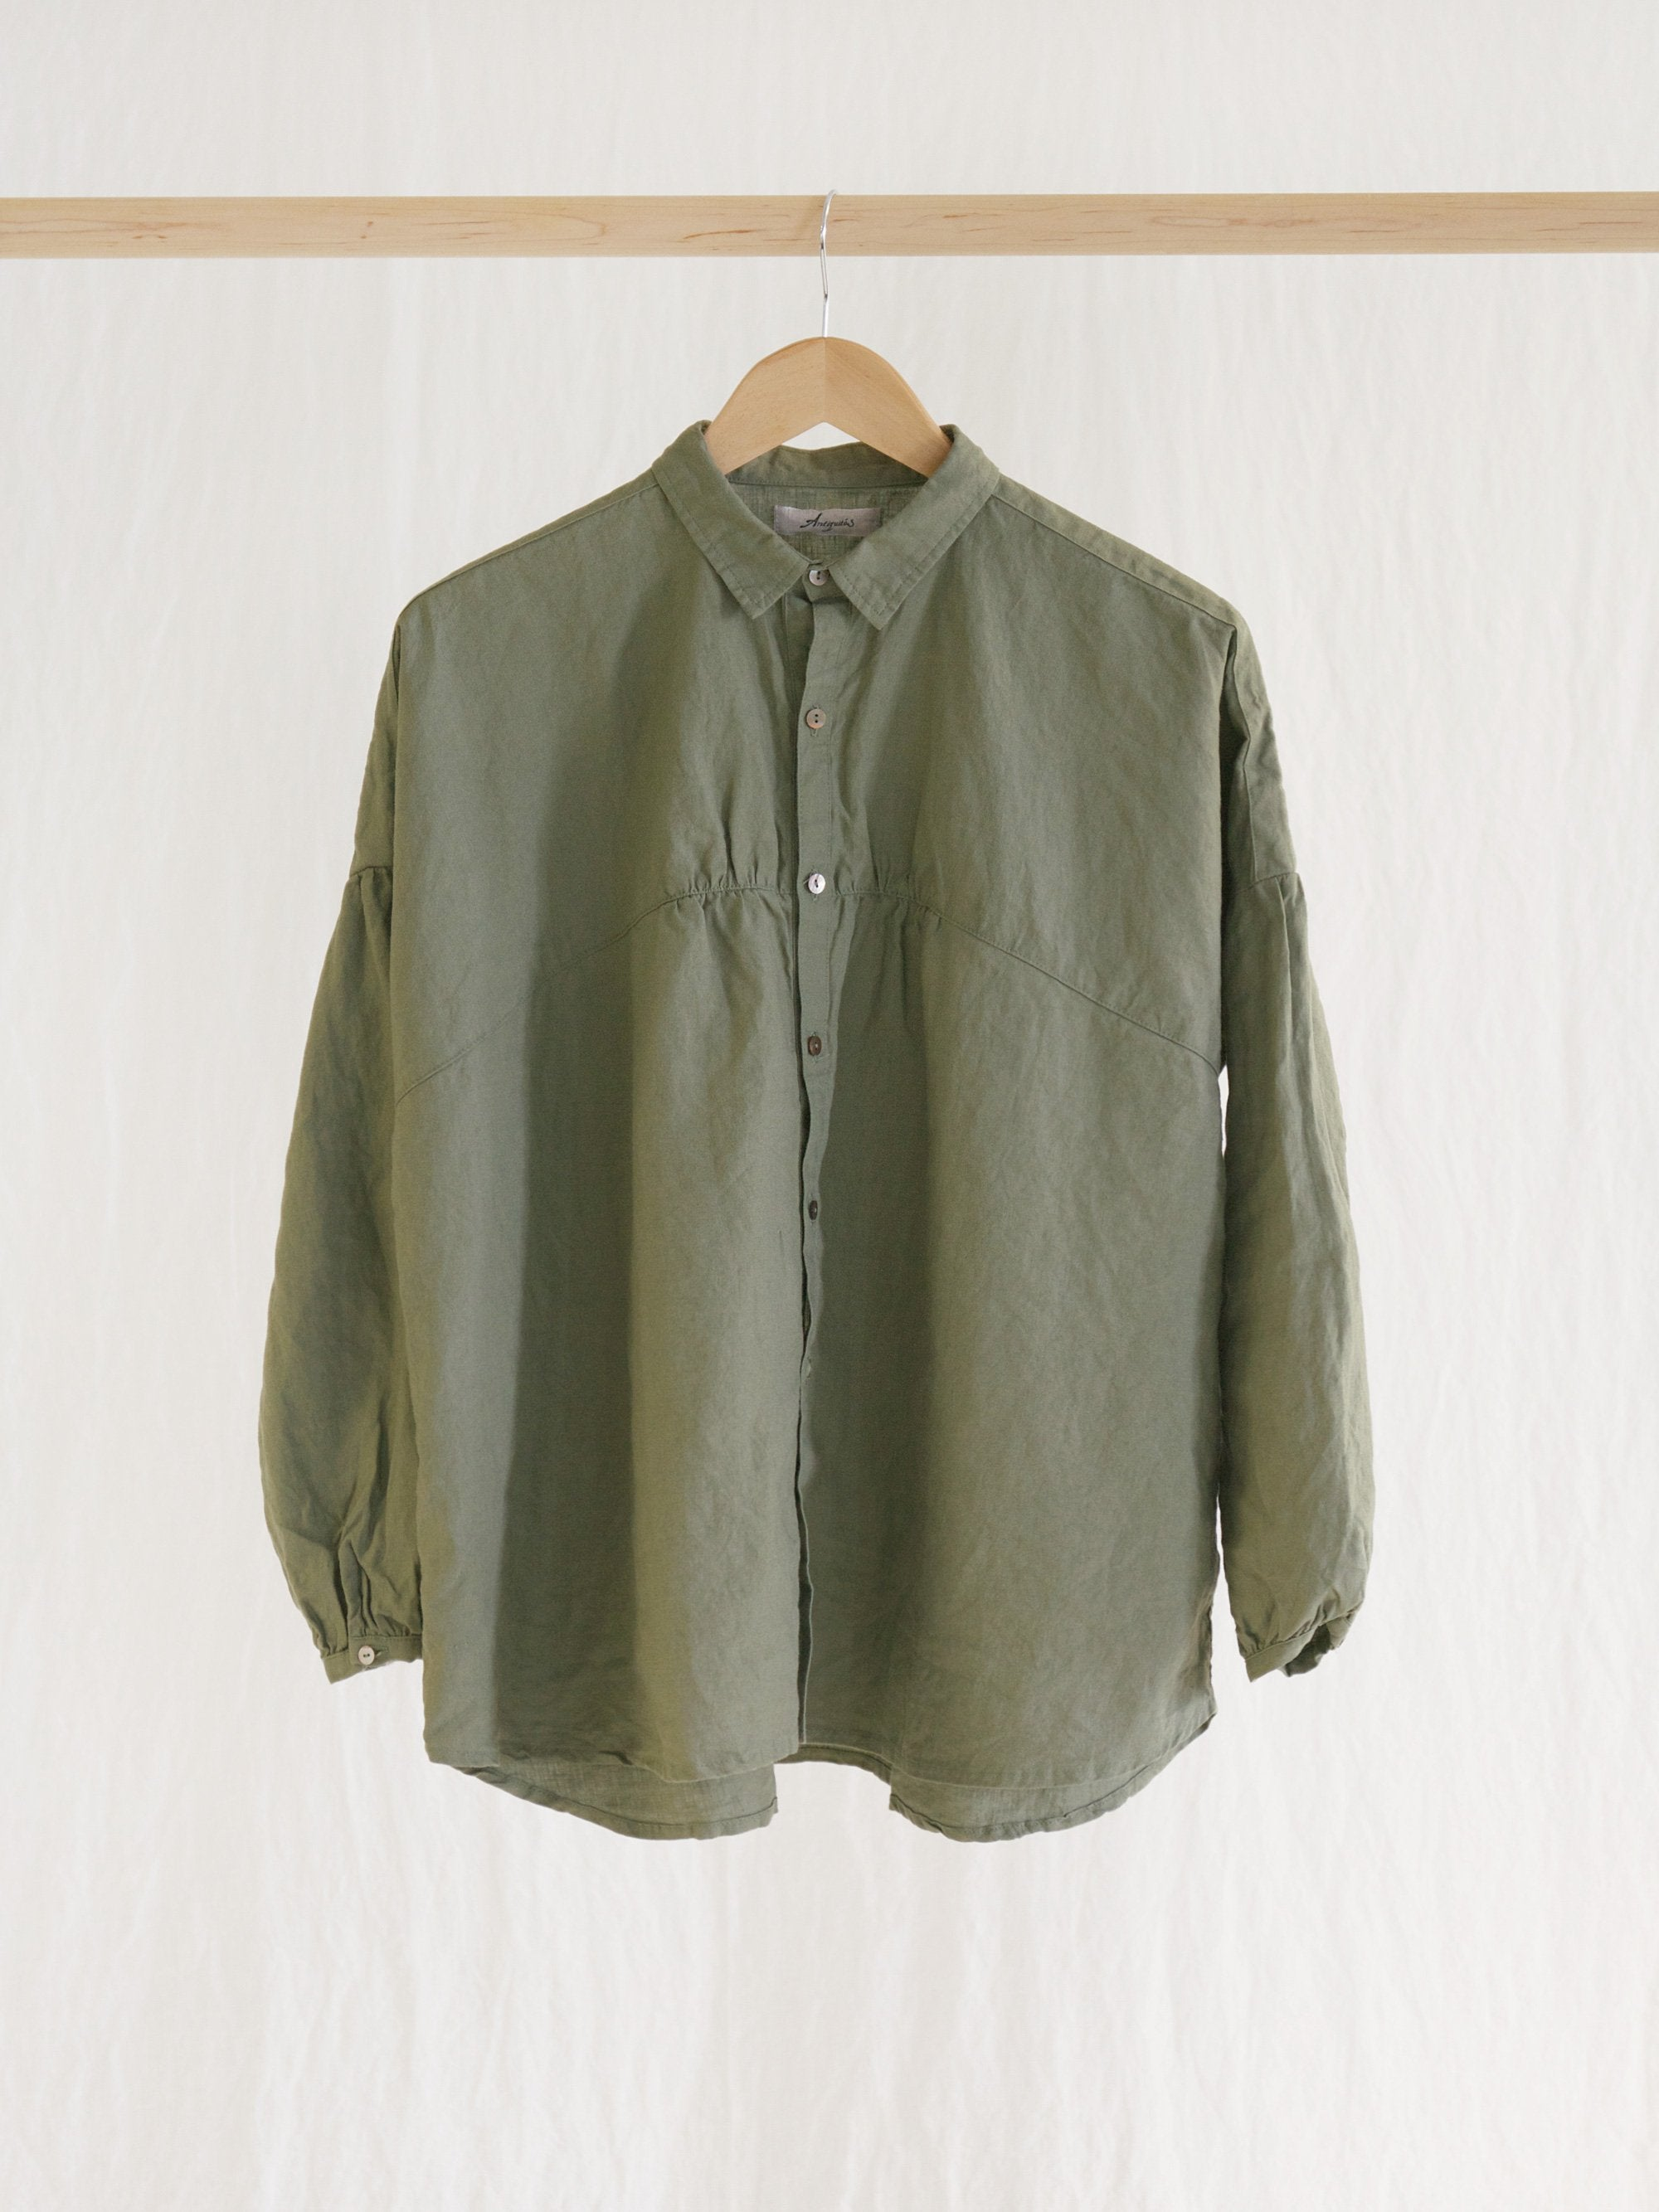 Namu Shop - Ichi Antiquites Linen Gather Circle Shirt - Olive (Re-stocked)